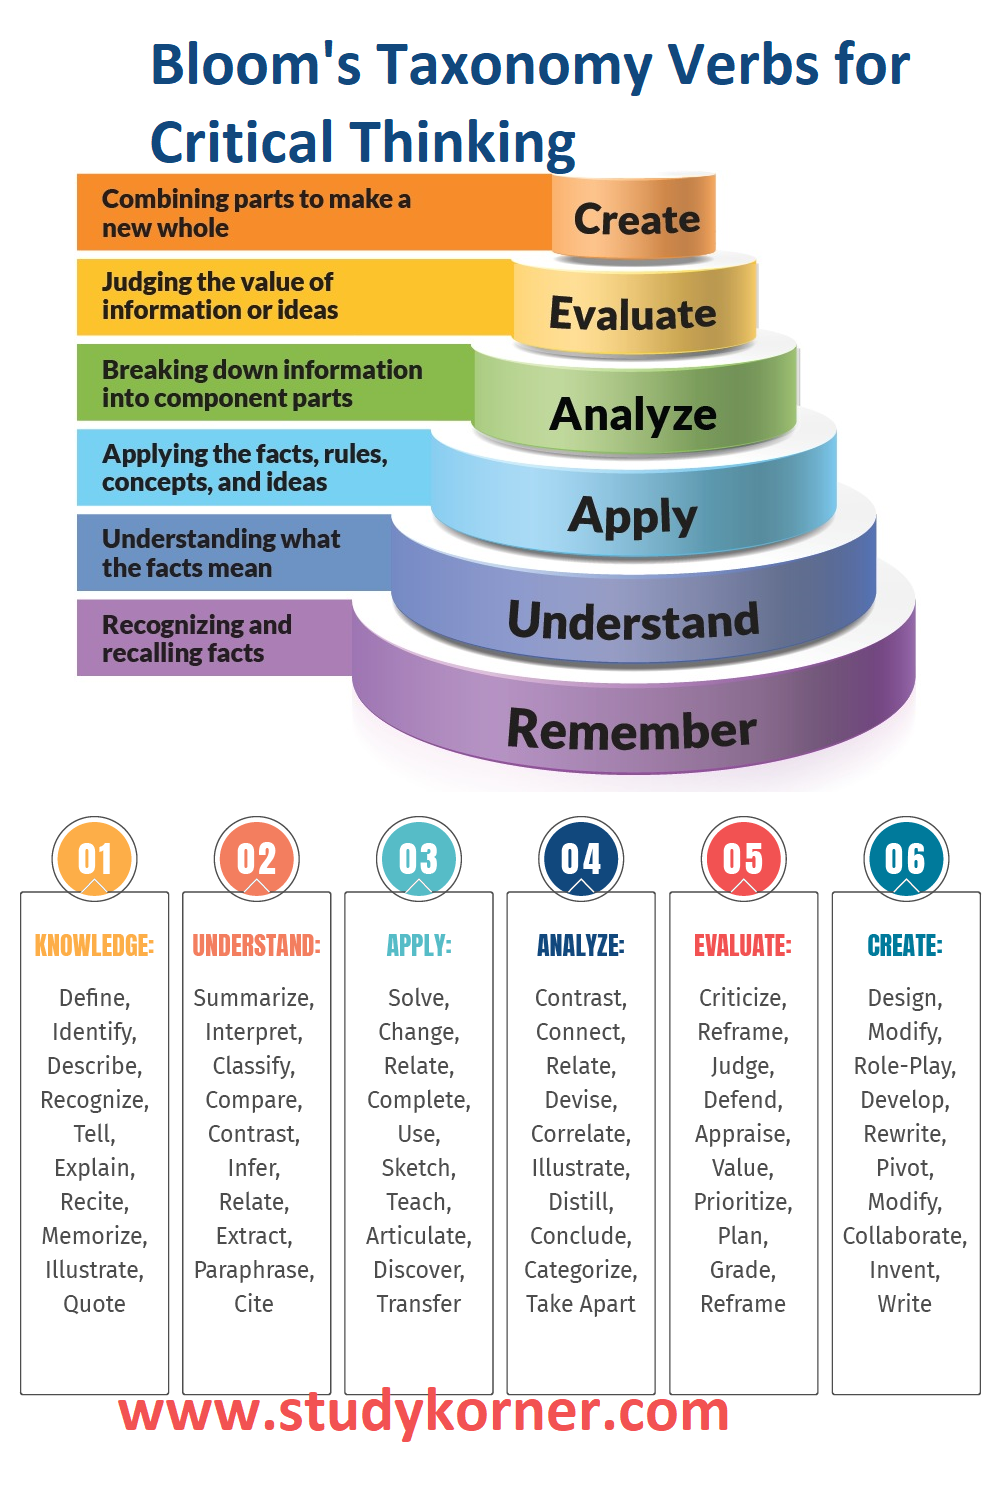 Bloom's Taxonomy Verbs for Critical Thinking